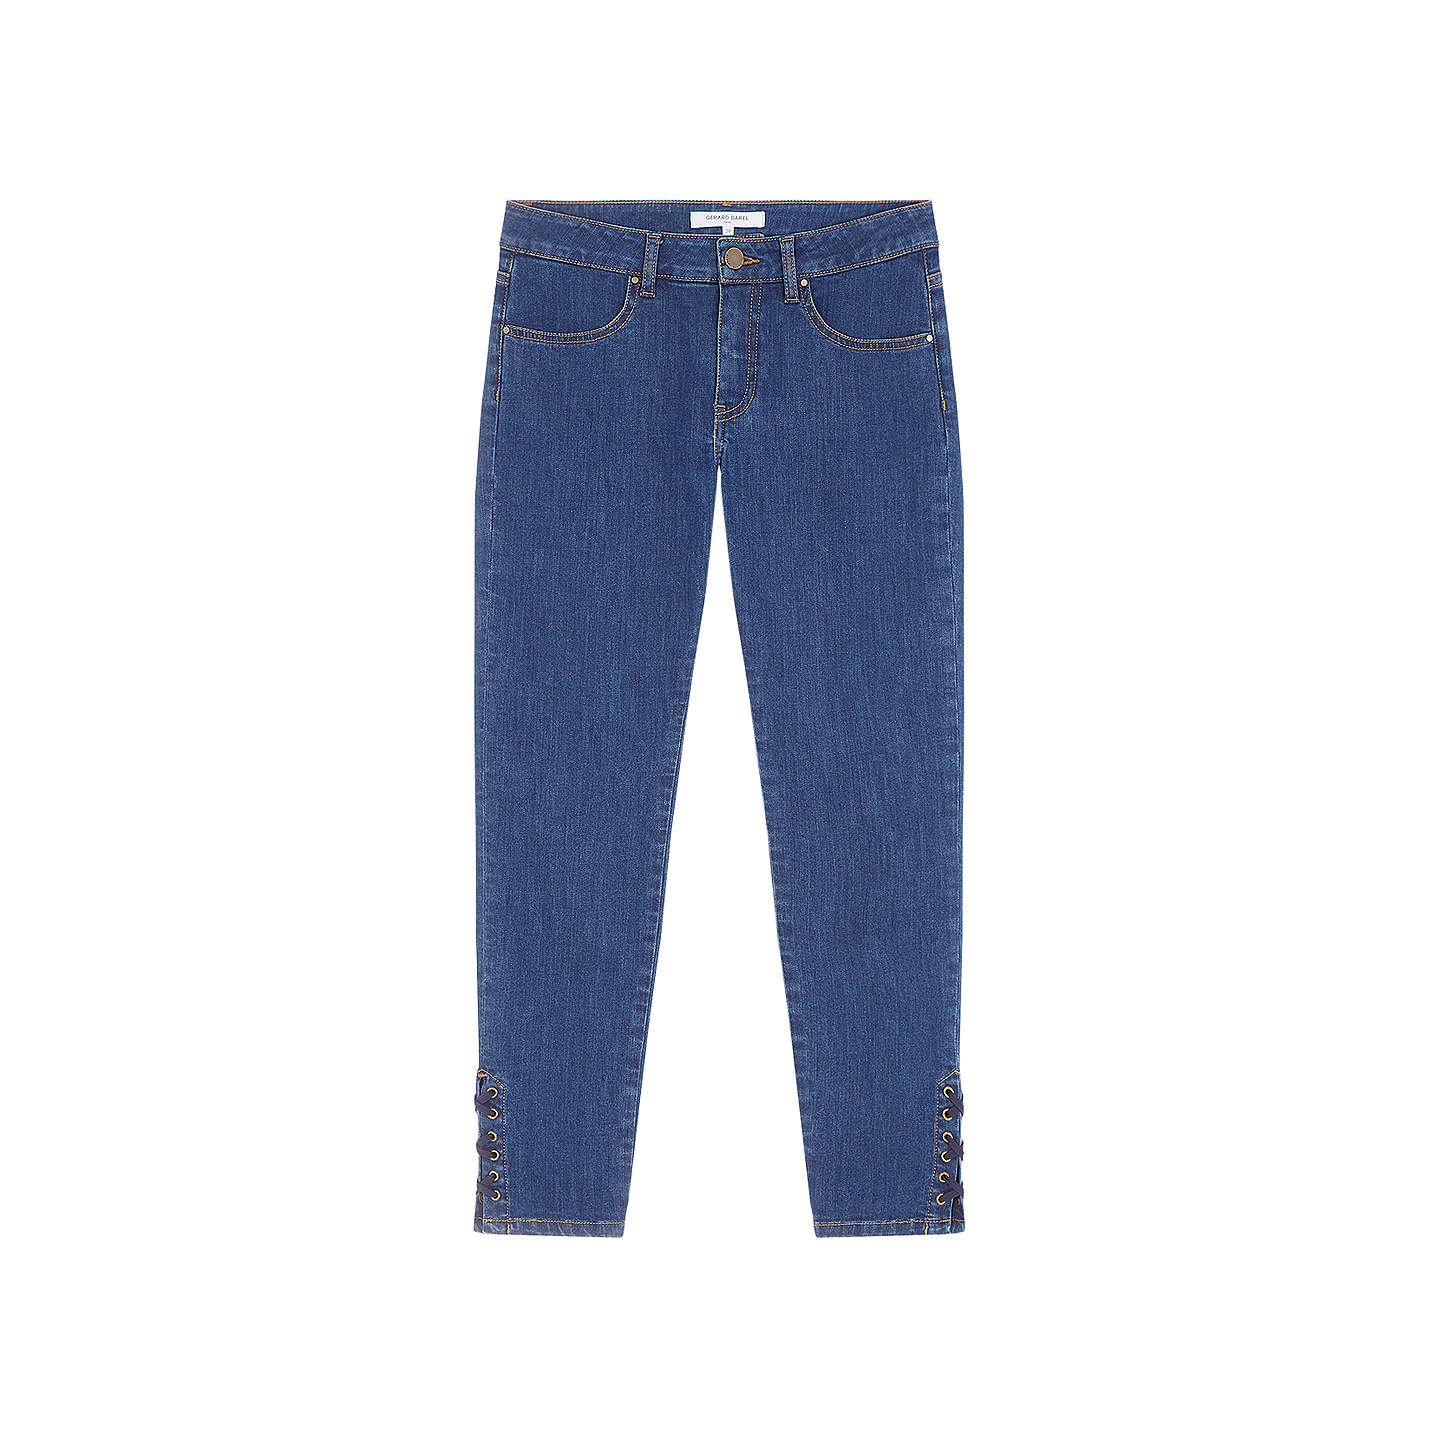 BuyGerard Darel Martha Jeans, Blue, 10 Online at johnlewis.com